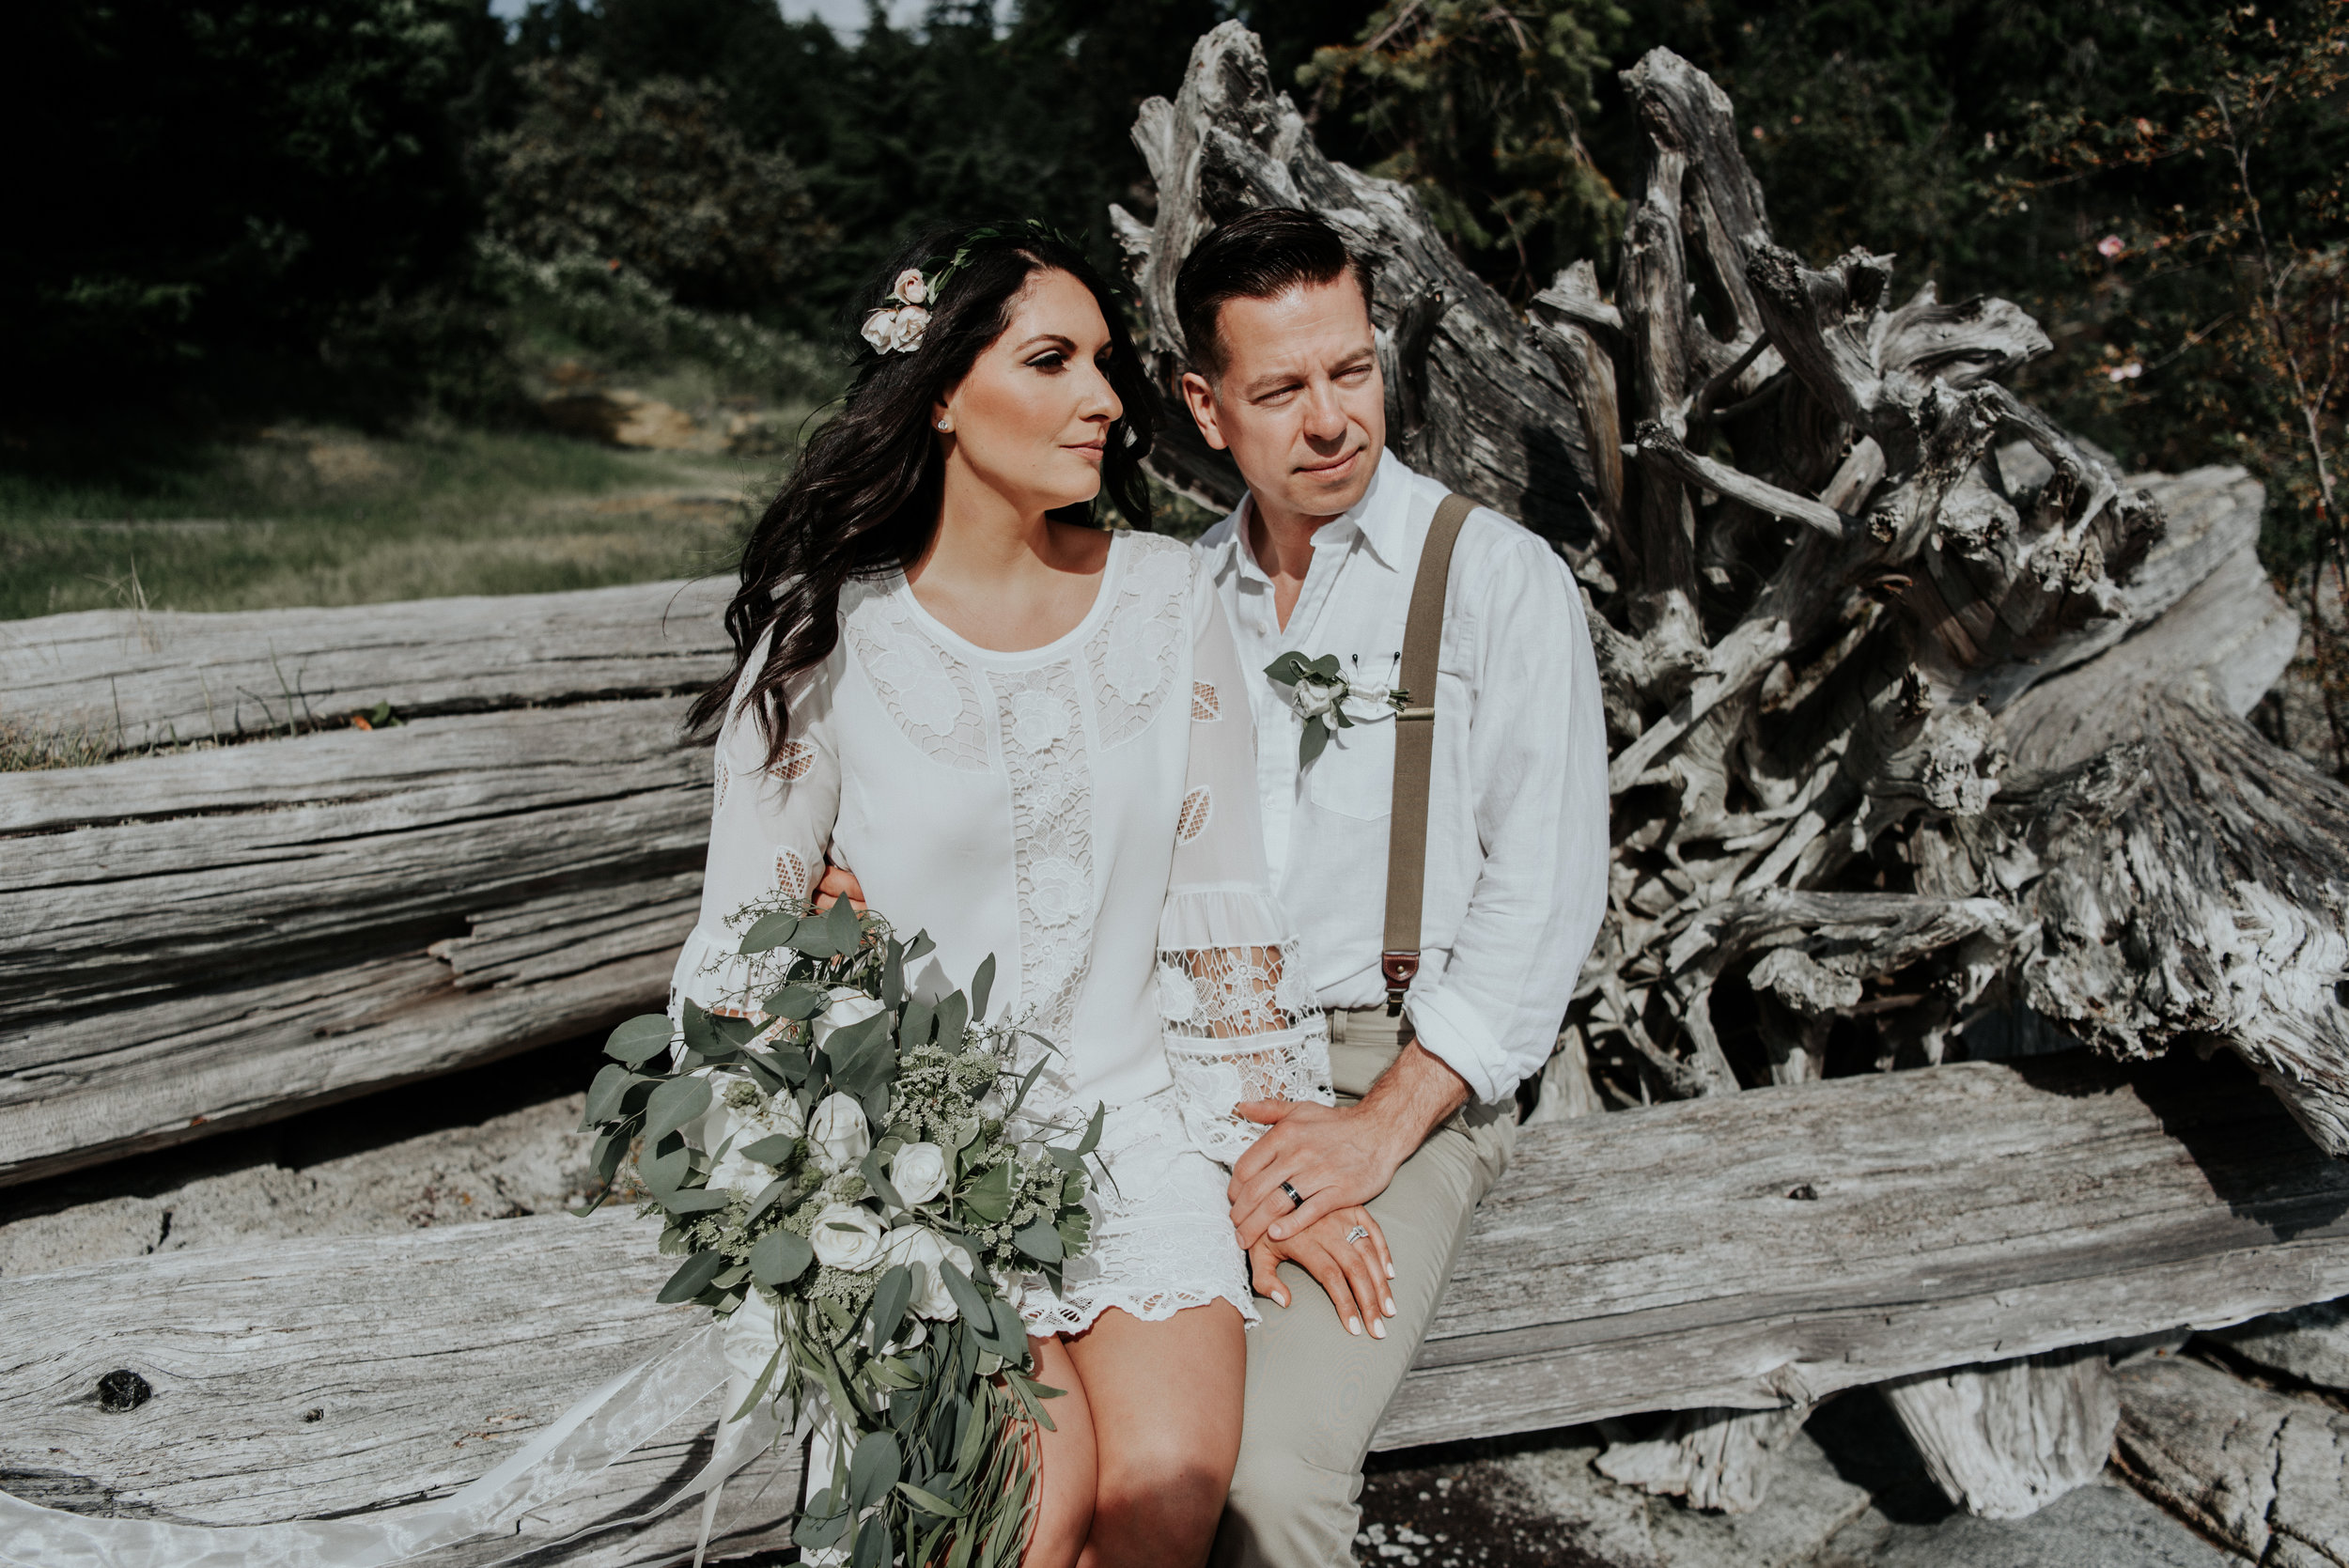 Ashley + Jeff - Rockwater Resort Elopement - Sunshine Coast BC Photographer - Laura Olson Photography-4365-2.jpg